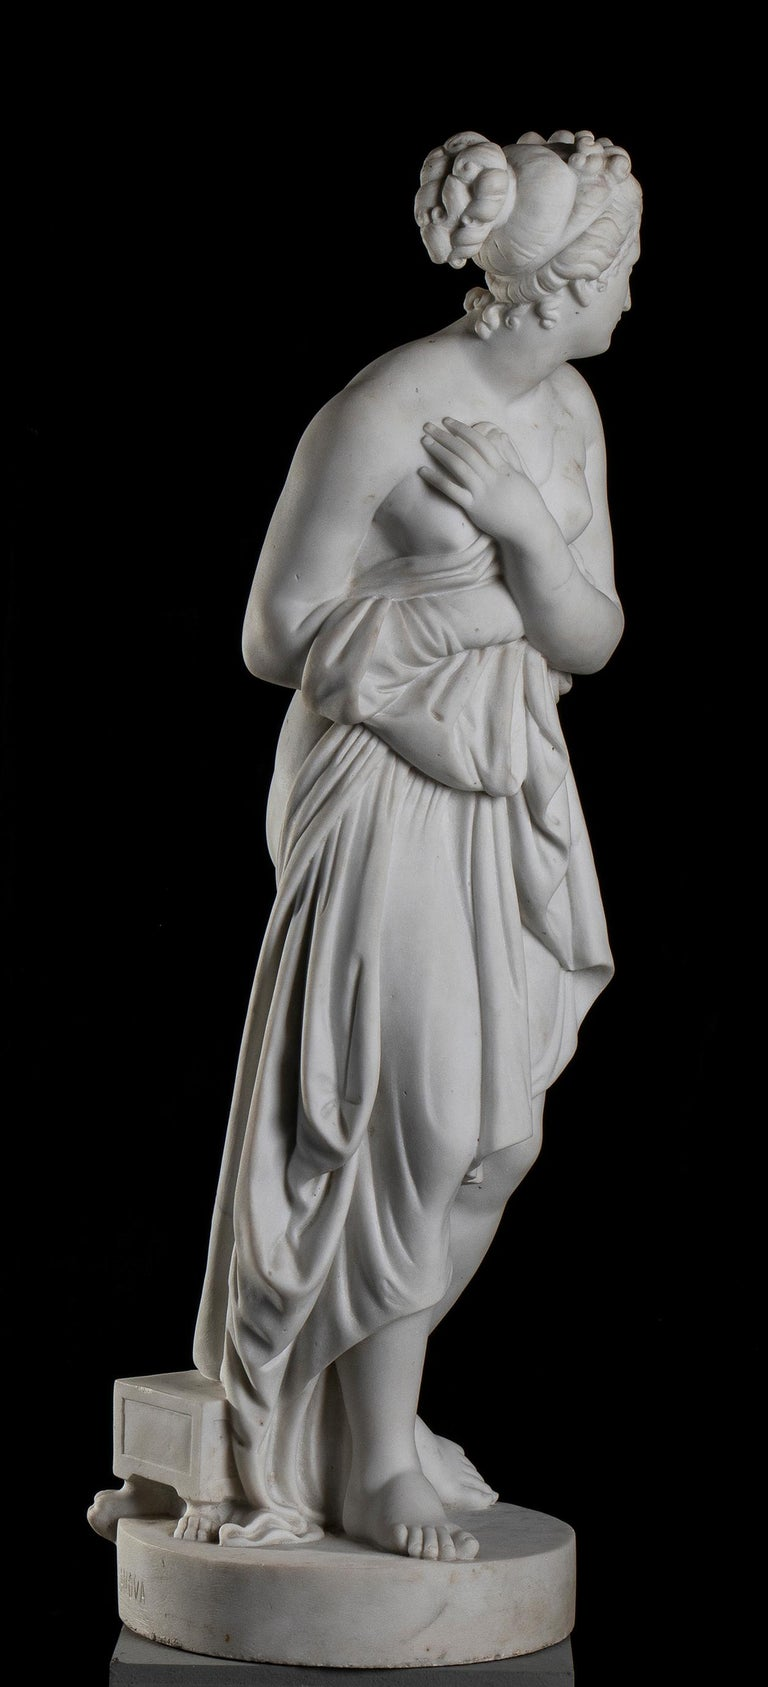 This marble sculpture of Venus Italica is a reduced scale, aprox 1/2,  of the  original version of the  Venus Italica, that is a height 172 cm and was commissioned by Napoléon Bonaparte and fashioned by Italian sculptor Antonio Canova. Canova